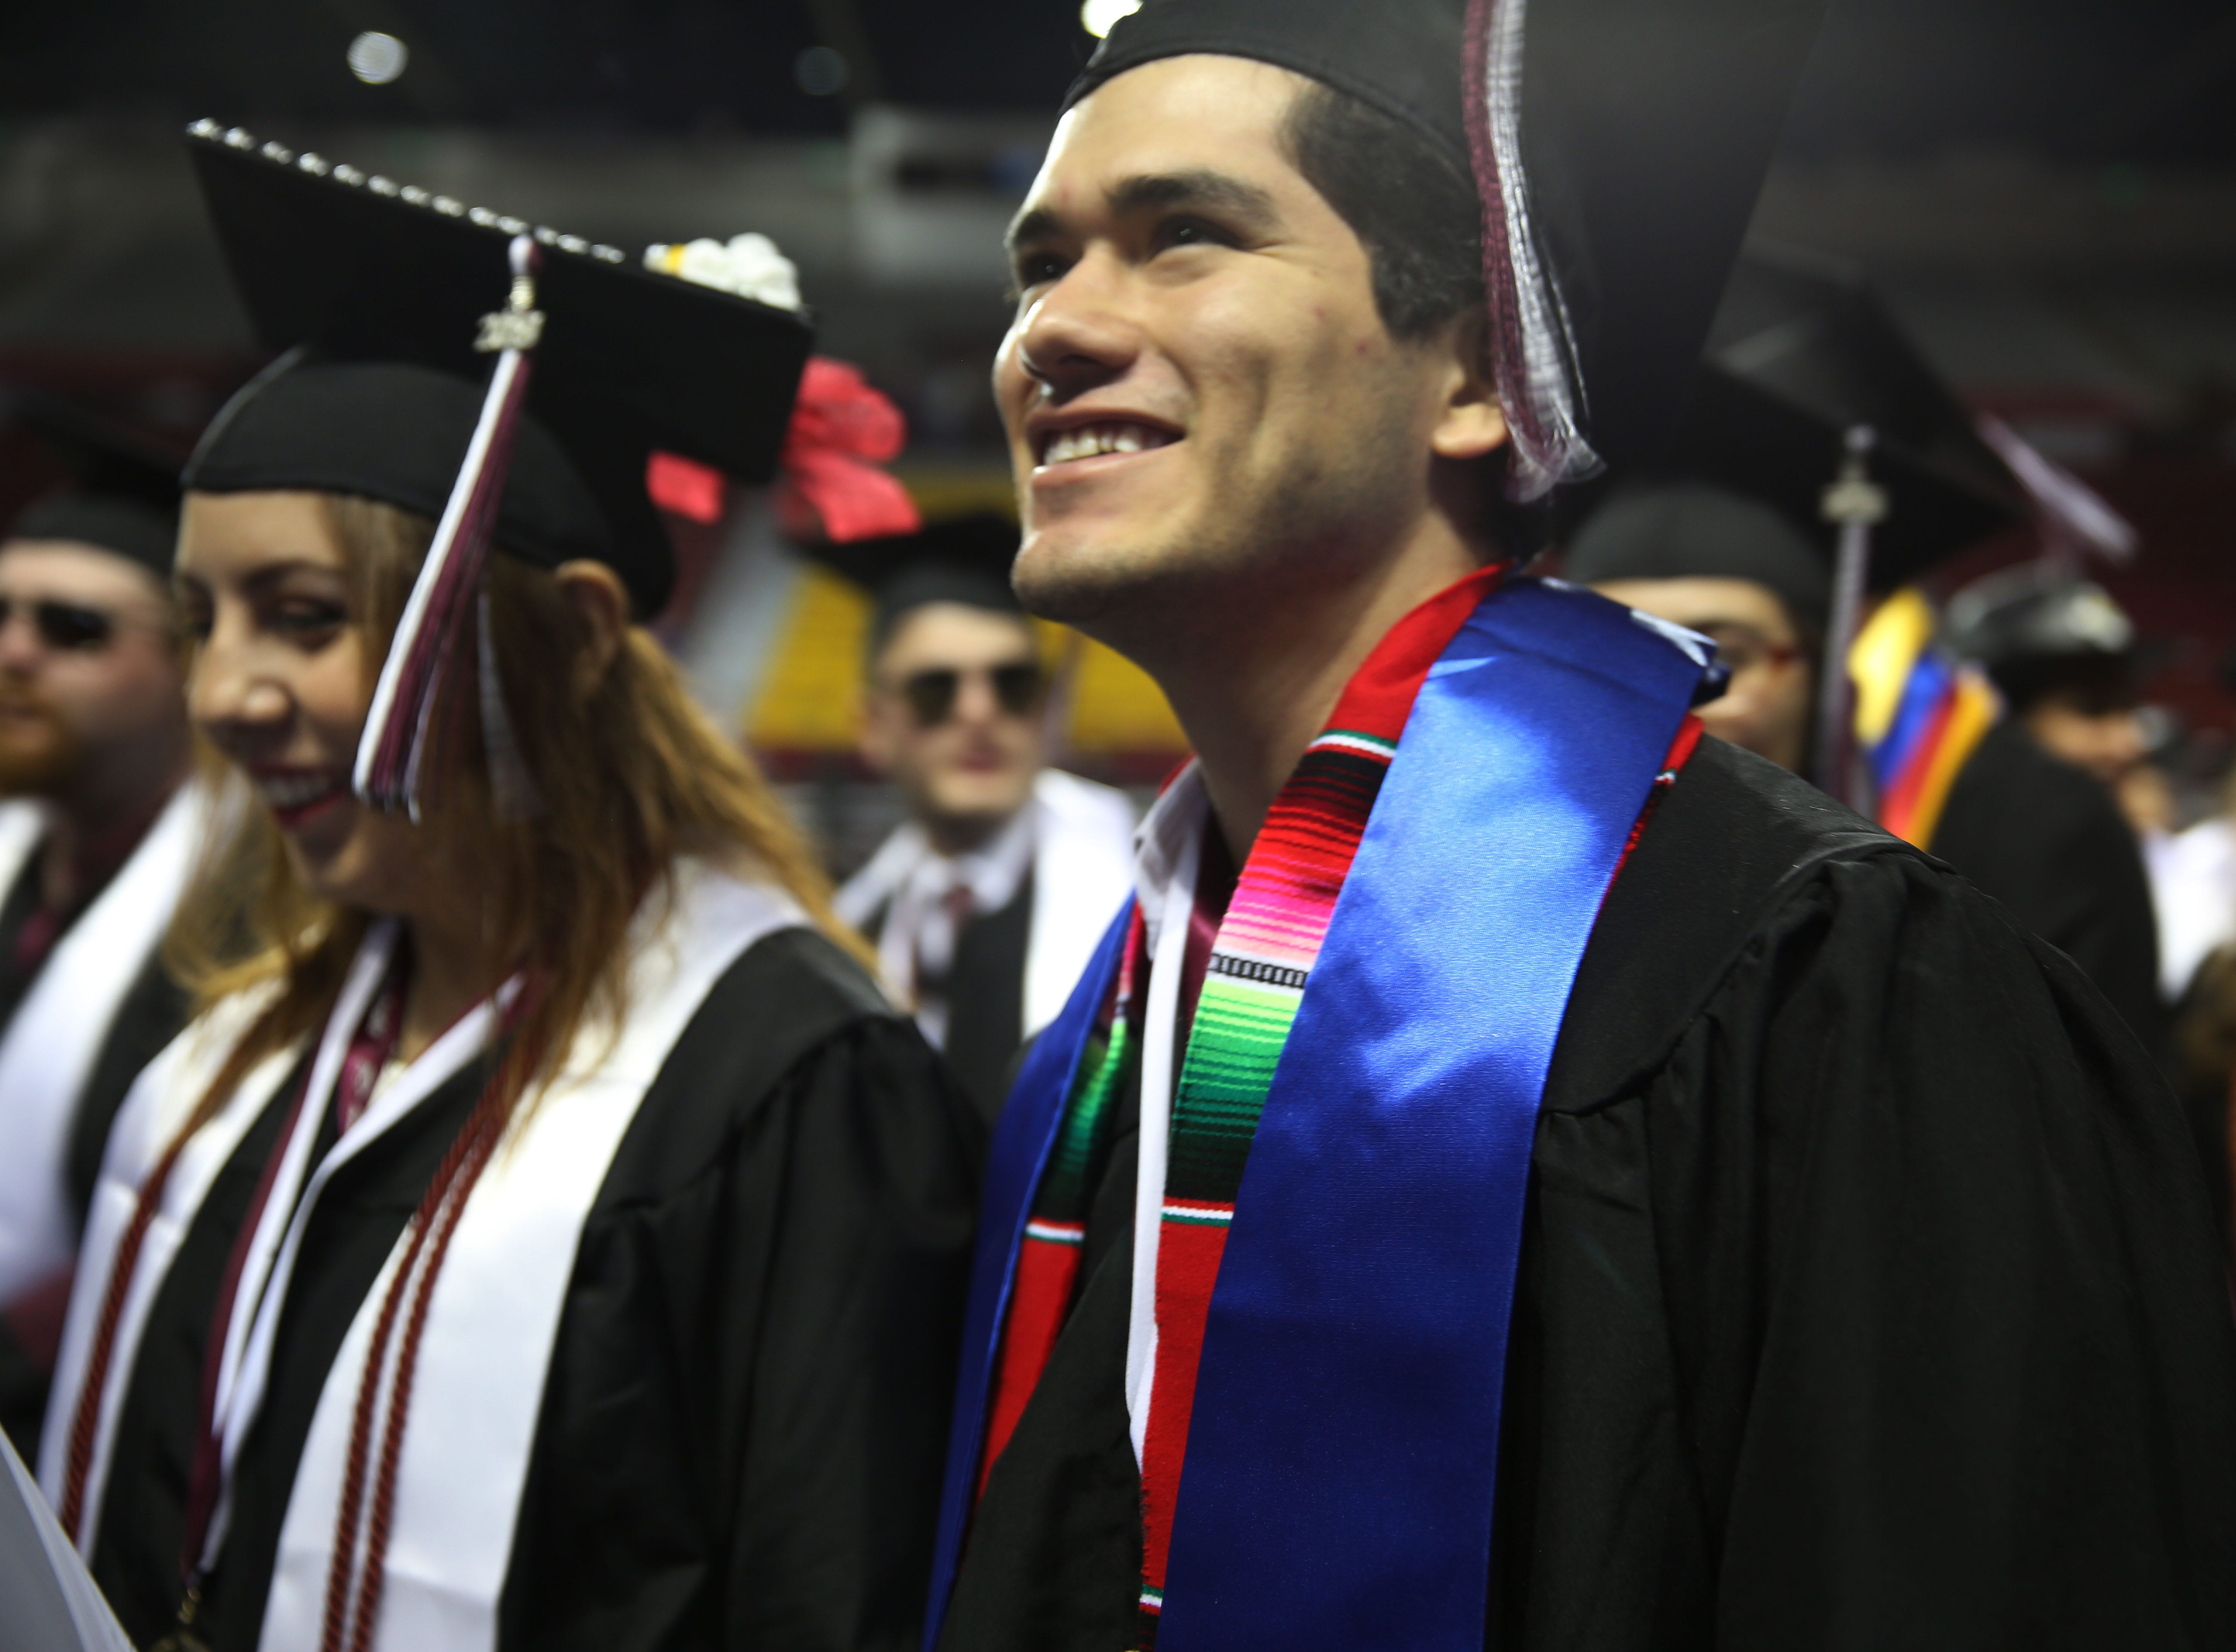 Presenting new graduates! New Mexico State University hosted it's commencement ceremony, Saturday May 11, 2019.